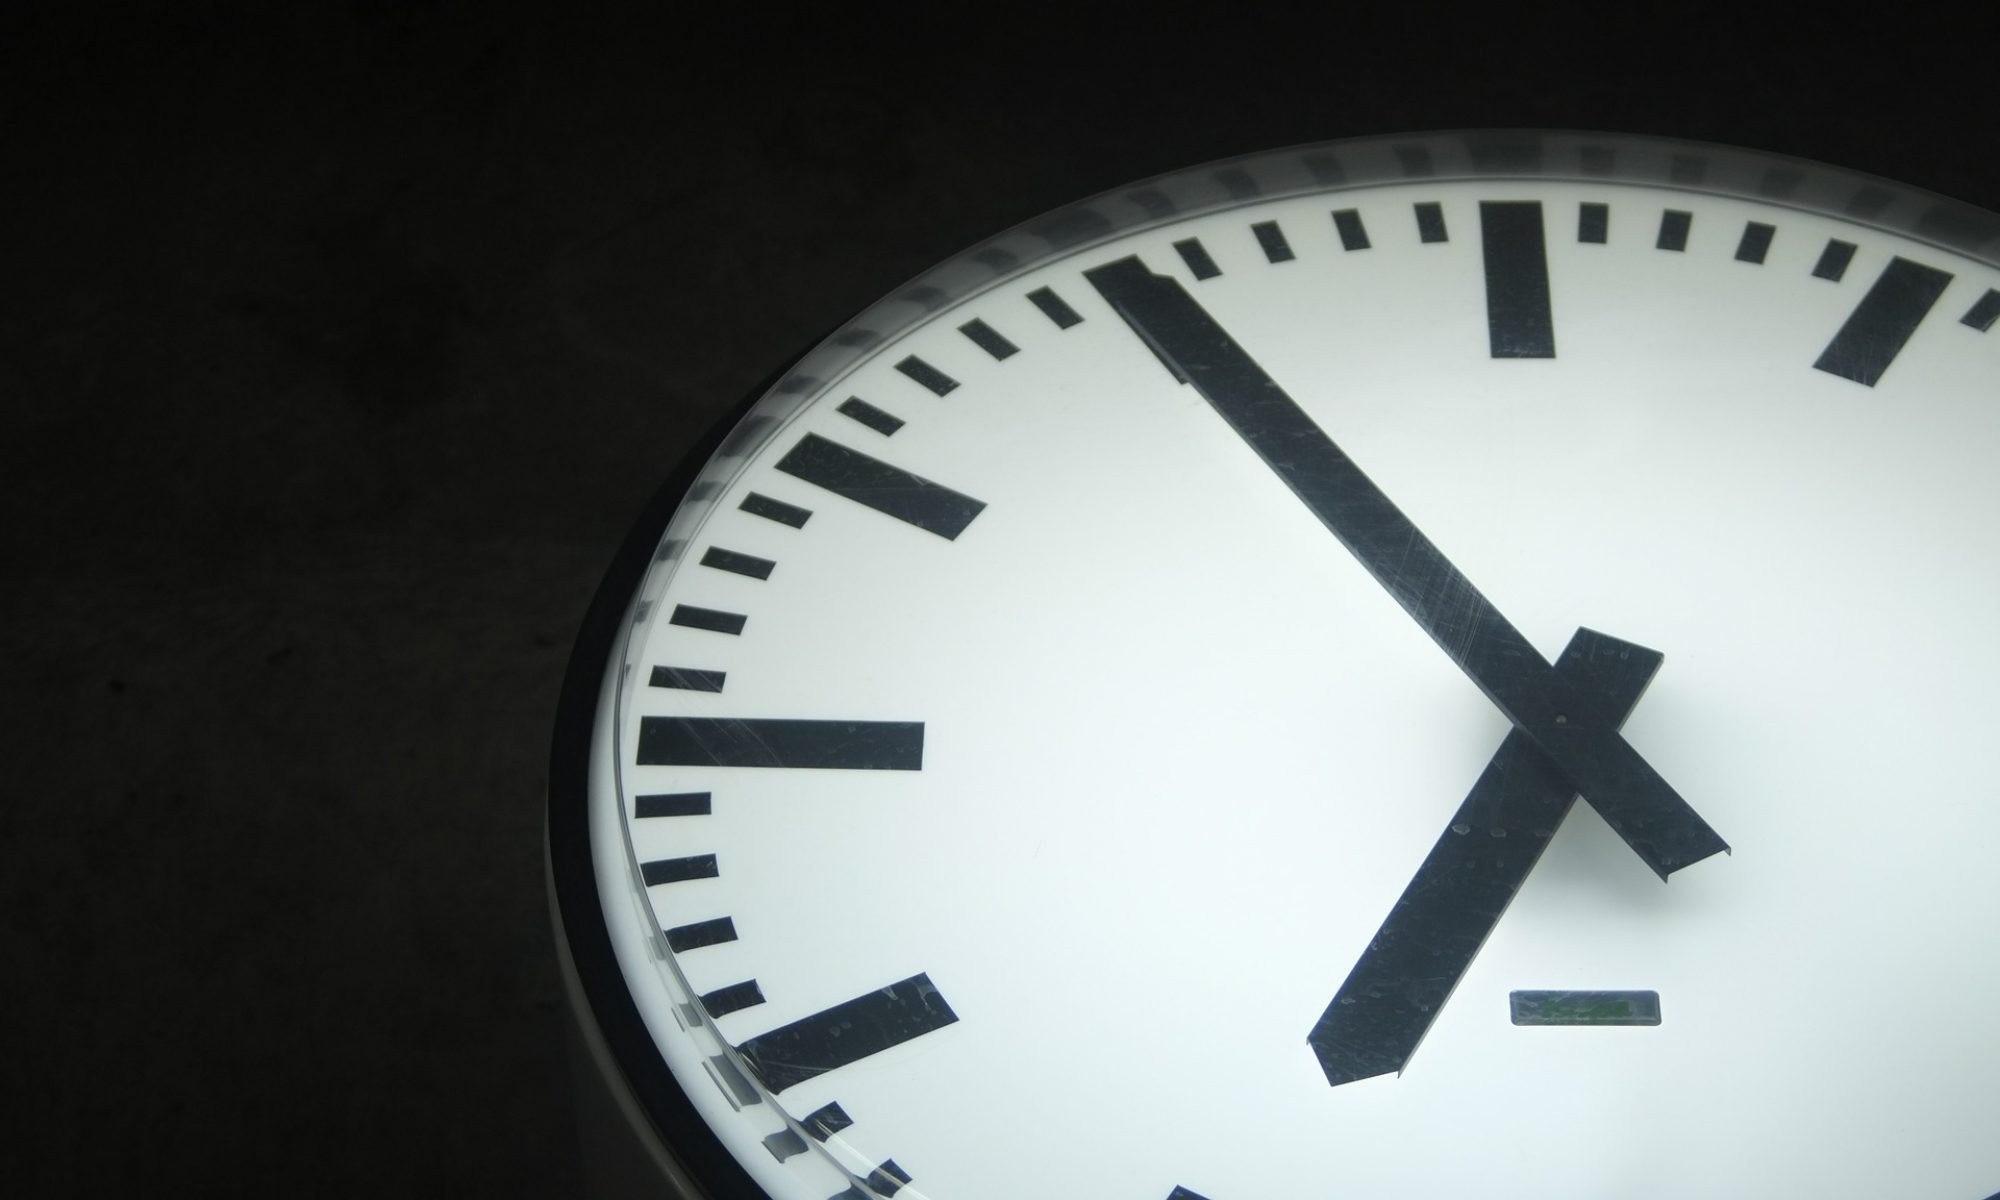 On time -- Temporal and normative ordering of mobilities